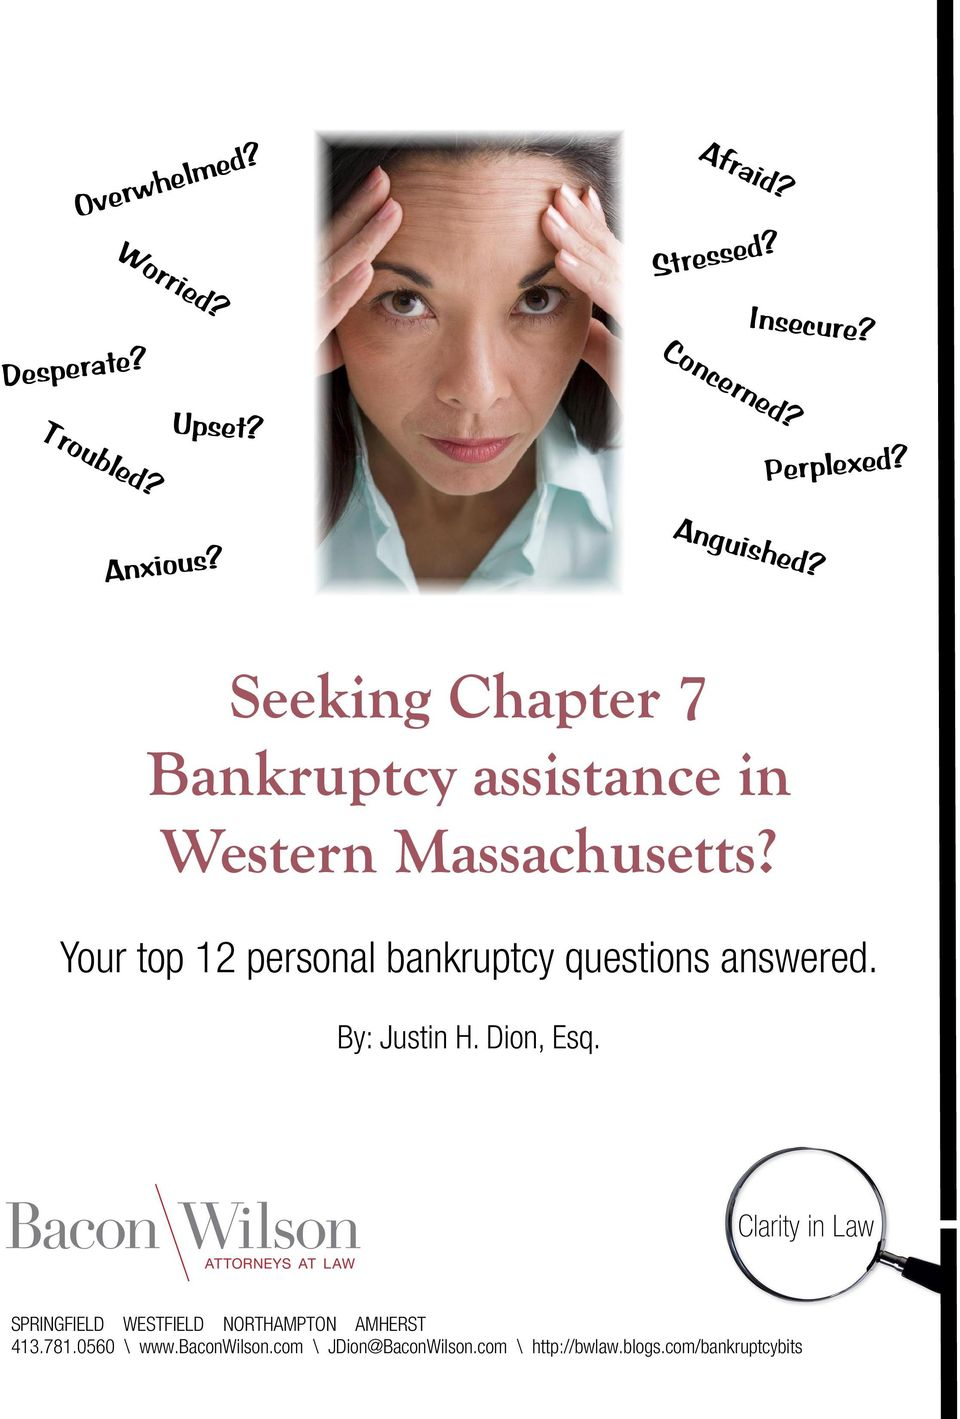 Your top 12 personal bankruptcy questions answered. By: Justin H. Dion, Esq.